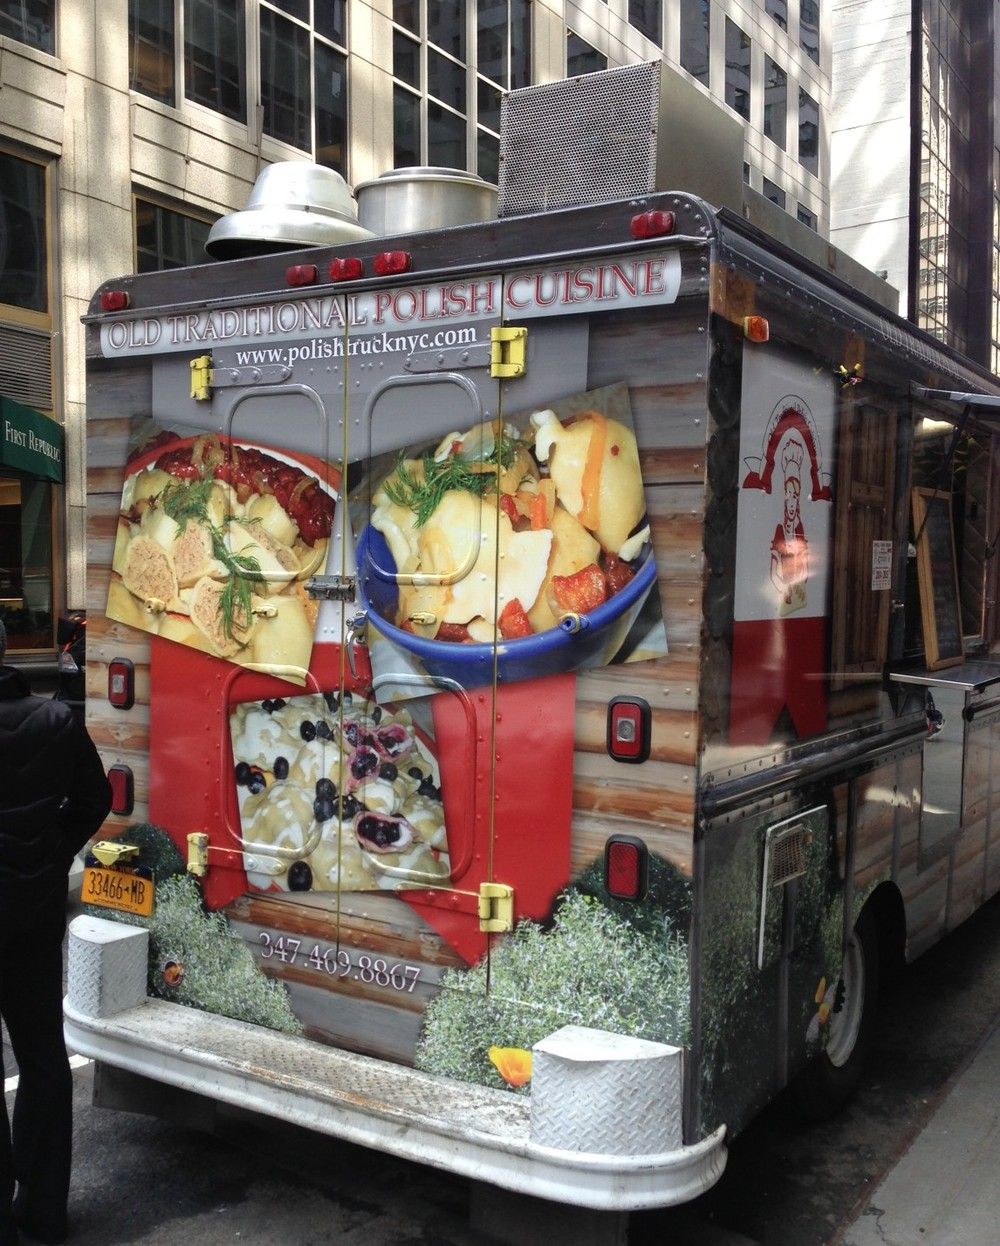 Old traditional polish cuisine food truck old for Authentic polish cuisine